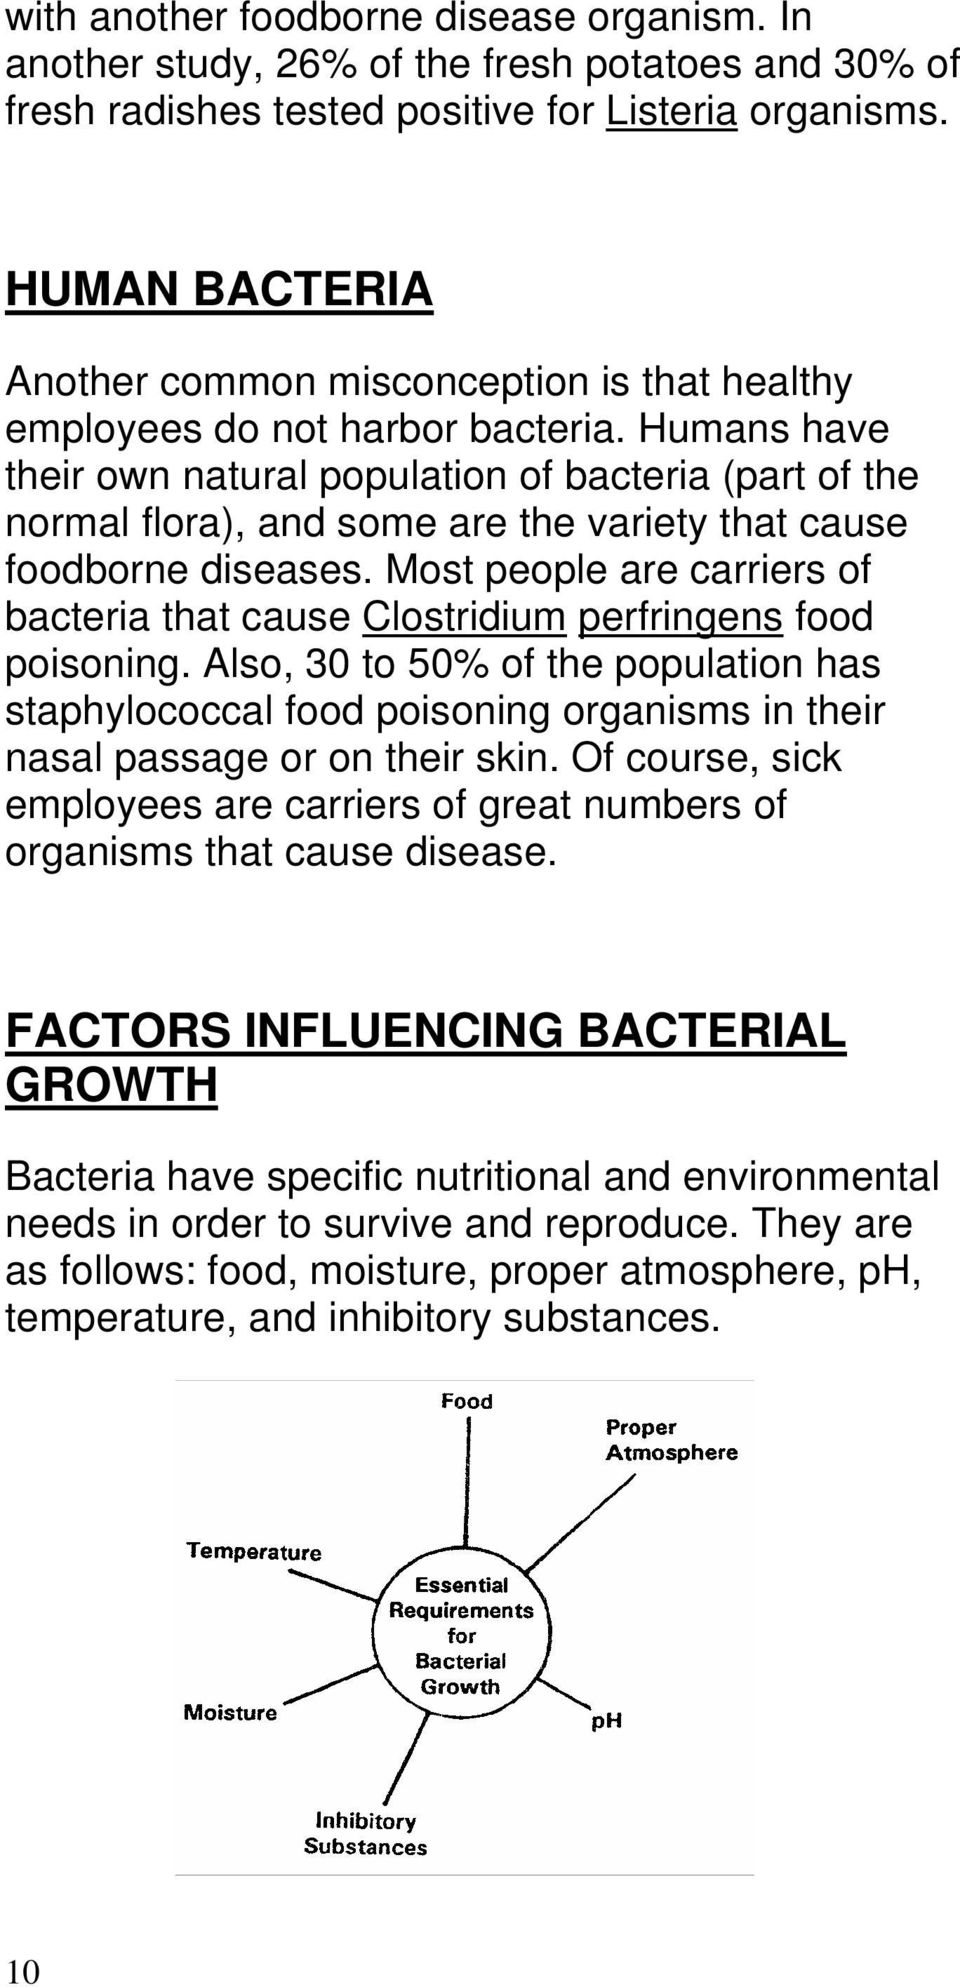 Humans have their own natural population of bacteria (part of the normal flora), and some are the variety that cause foodborne diseases.